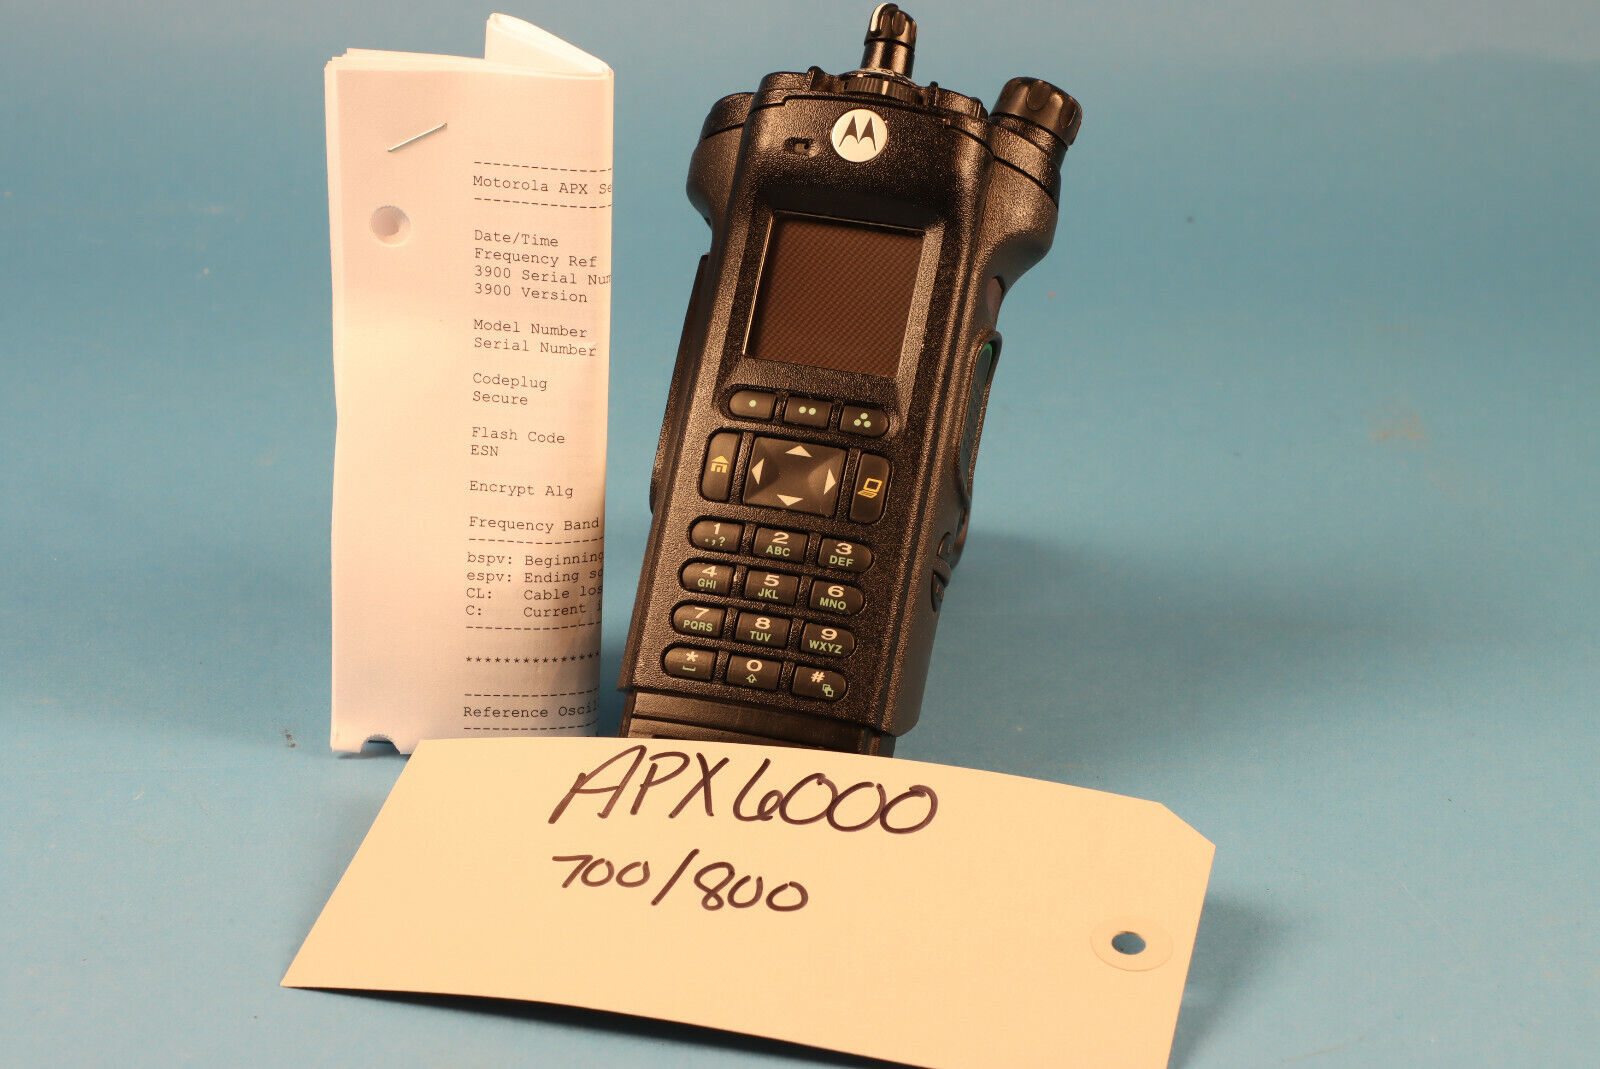 Motorola APX6000 700/800 MHz Bluetooth ADP DES AES256 RADIO ONLY *Tags. Available Now for 1985.00